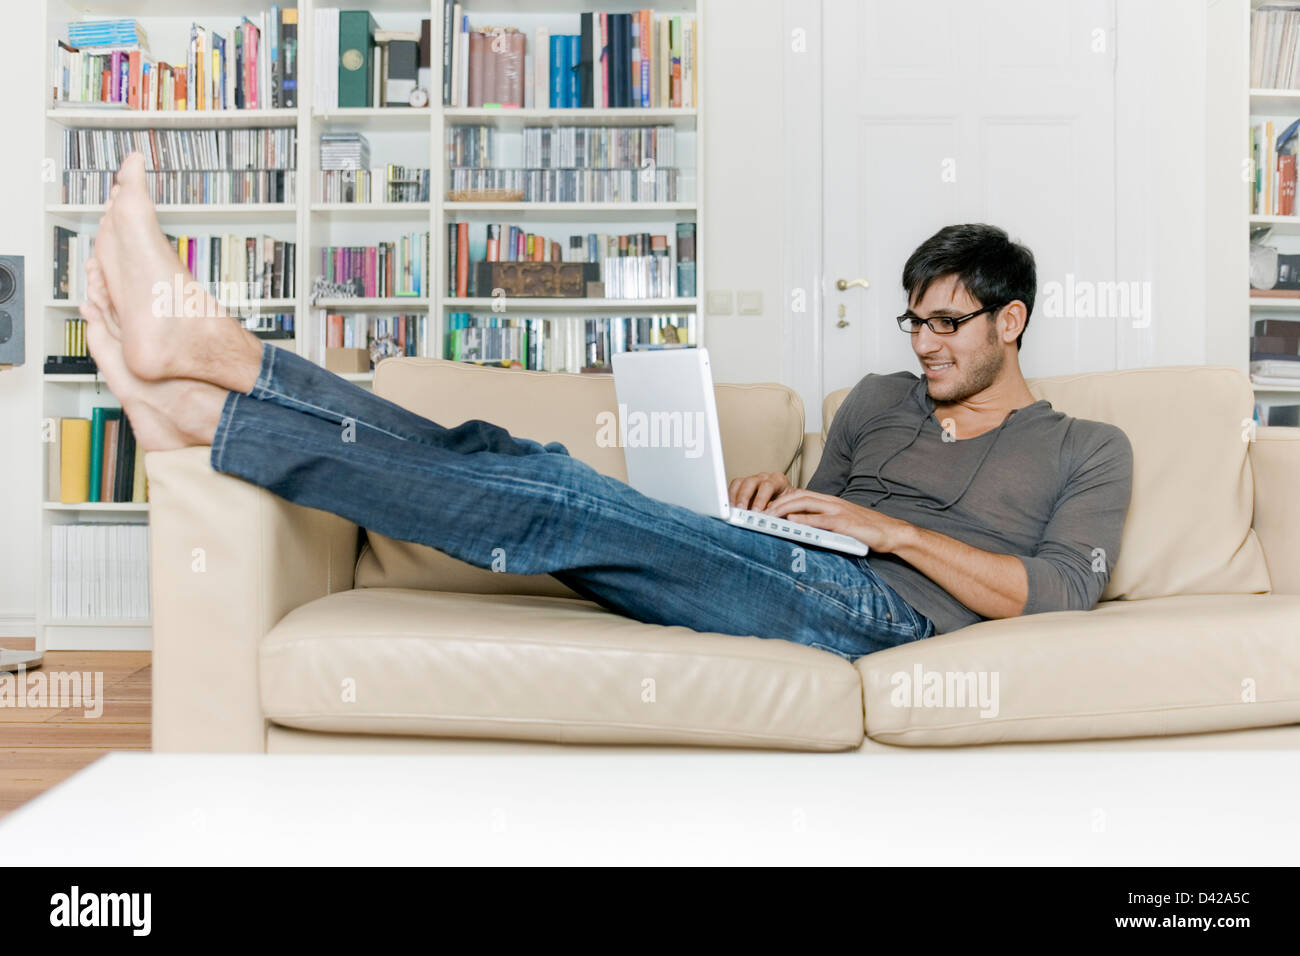 A man very comfortable surfing the internet using a laptop. - Stock Image